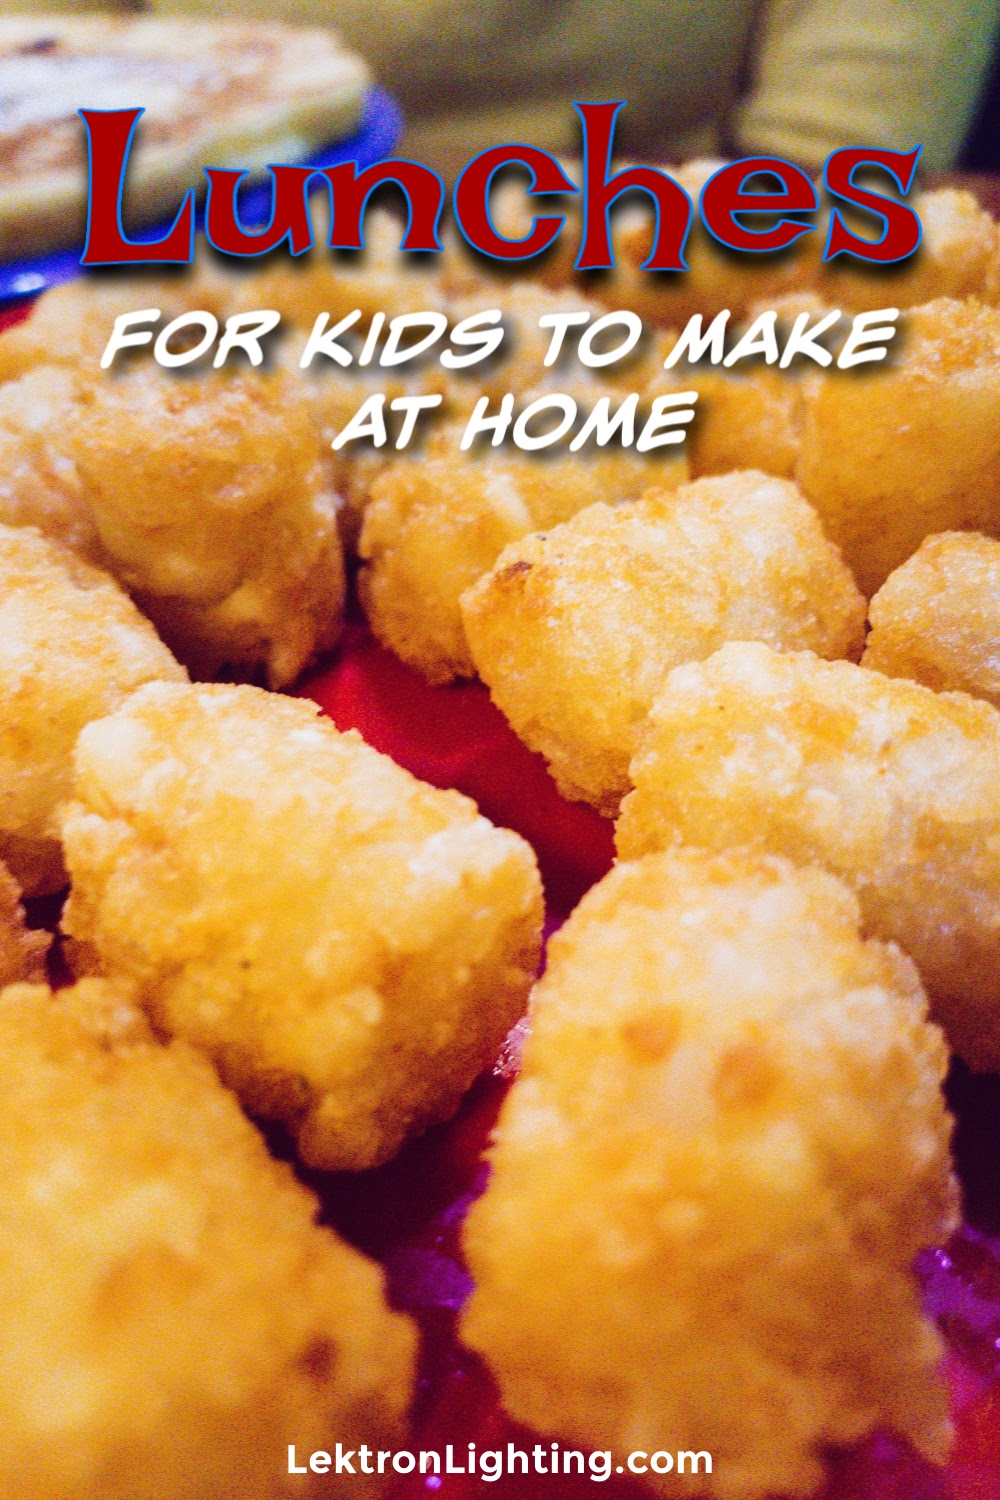 Making easy lunches for kids is never an issue but finding lunches kids can make on their own is an entirely different story.